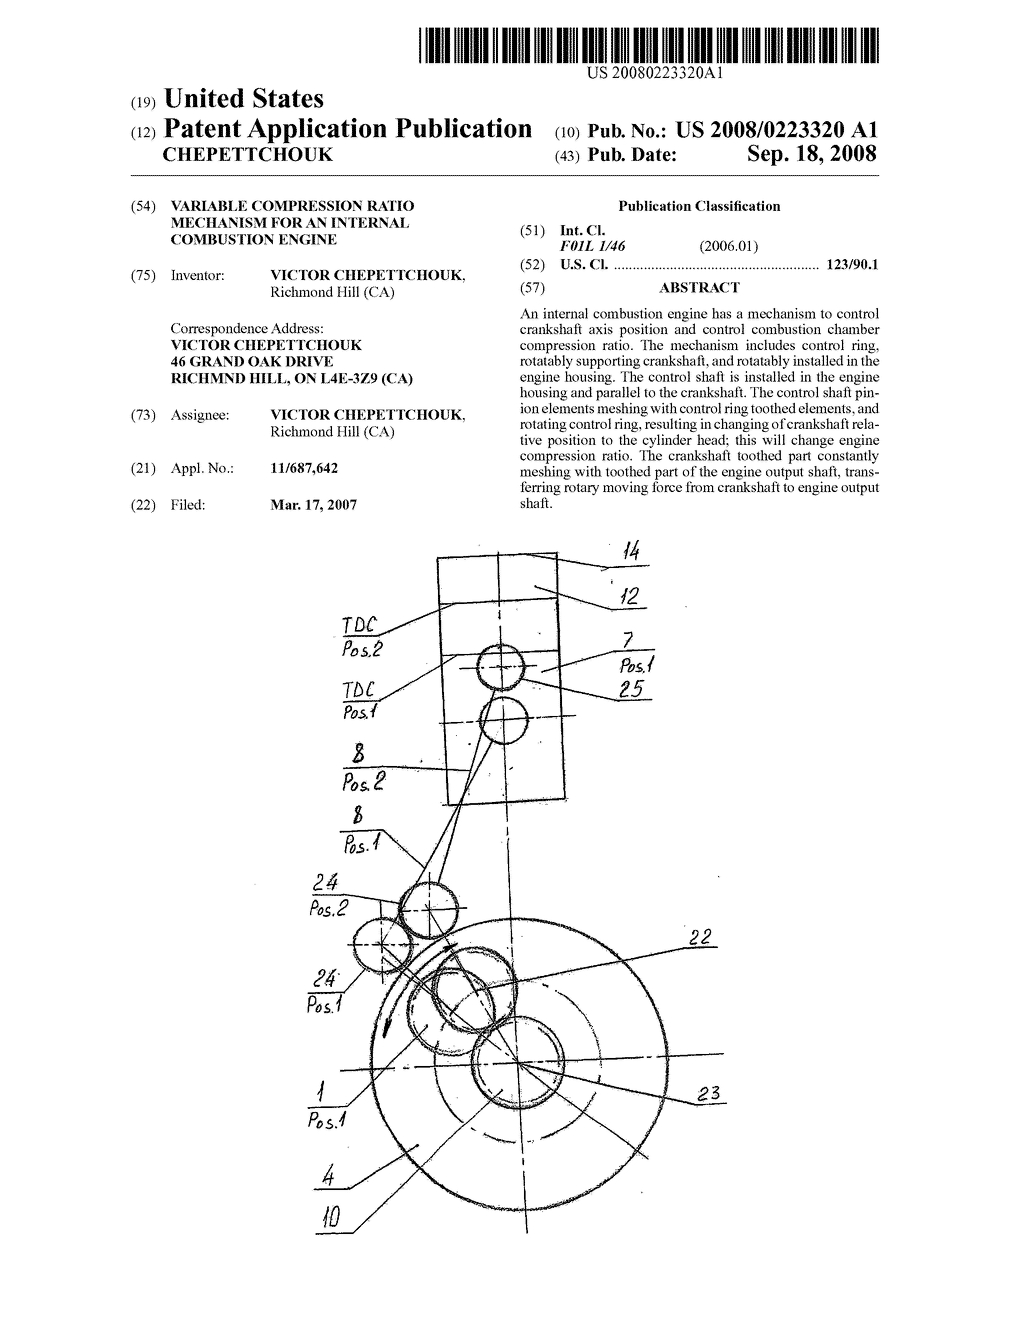 Variable Compression Ratio Mechanism For An Internal Combustion Bike Engine Diagram Schematic And Image 01